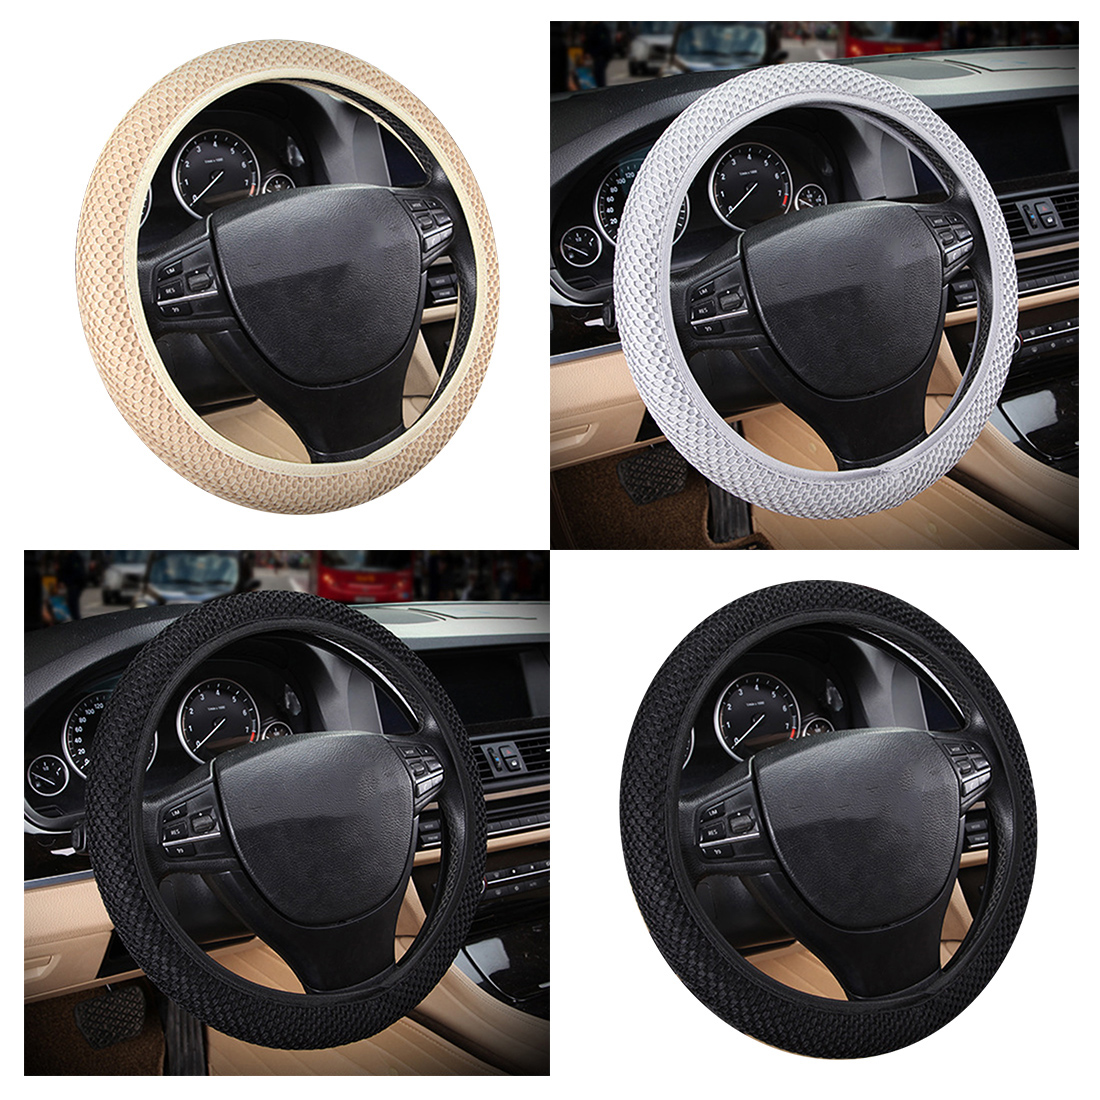 Dewtreetali Universal Car Steering Wheel Cover Breathable Sandwich Fabric Steering Wheel Protector Four Seasons Car Styling dewtreetali seat cover protector car steering wheel cover shoulder pad car styling luxury universal fit most zebra seat covers